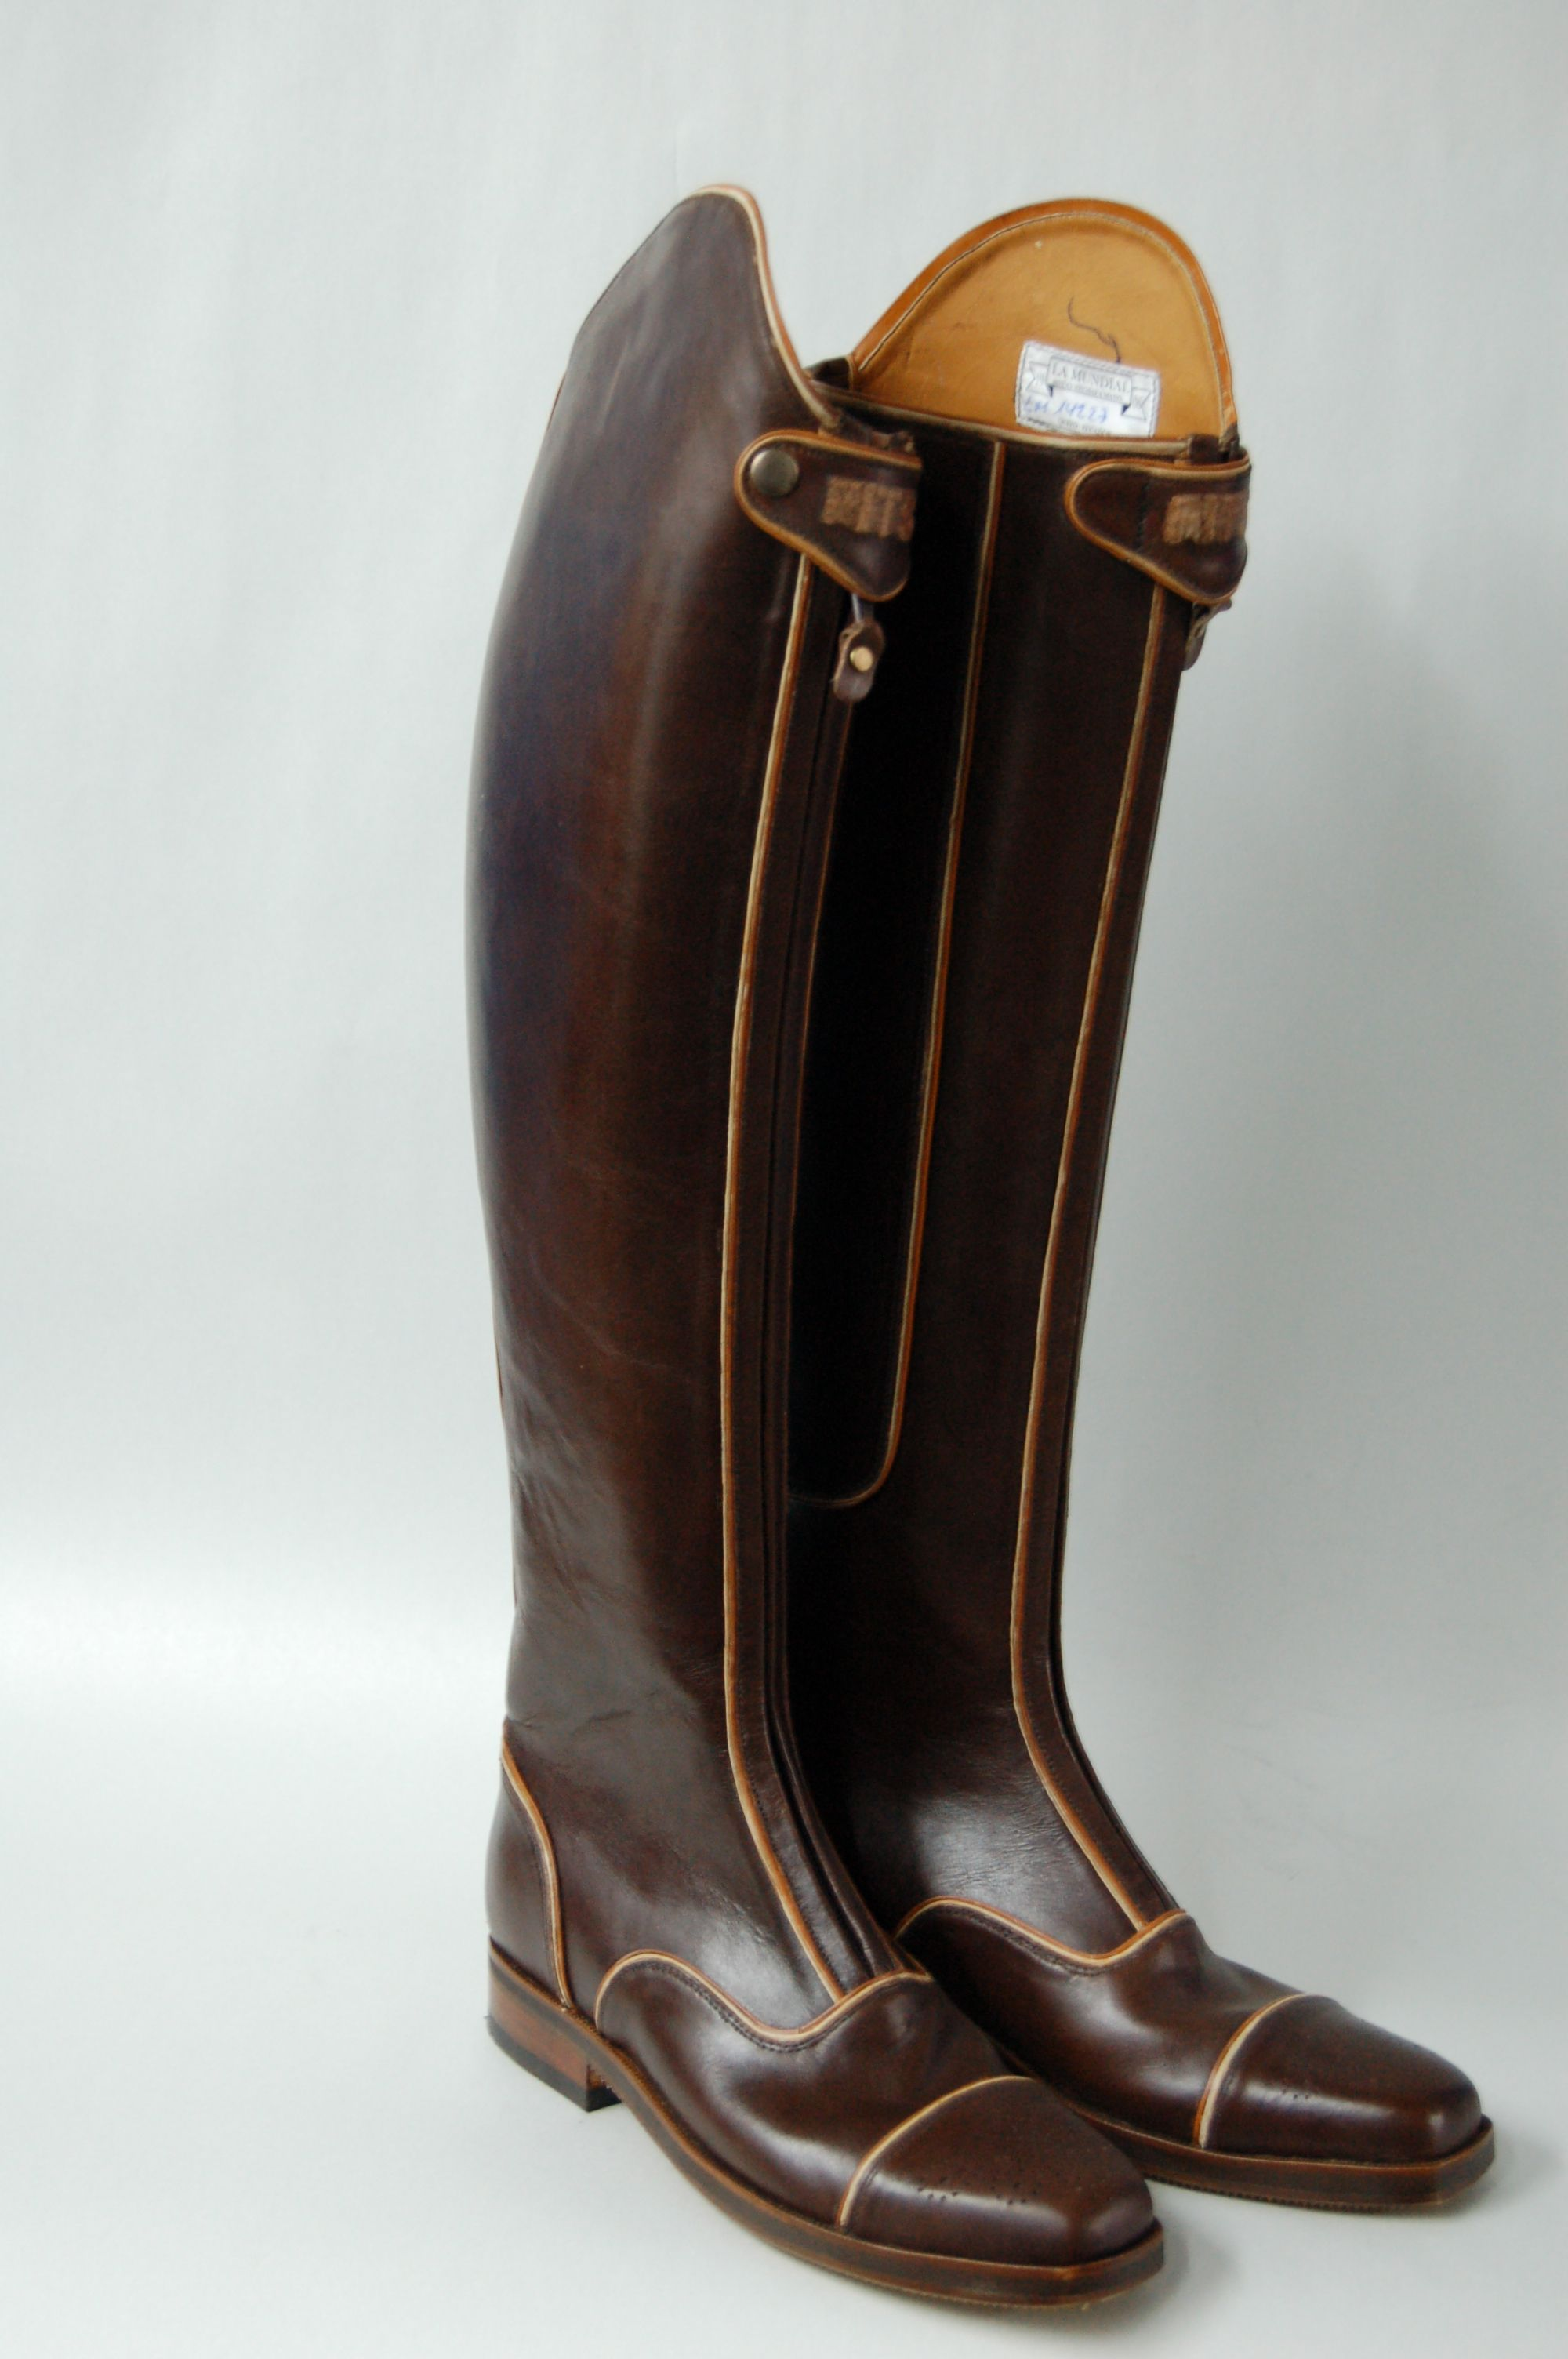 Custom La Mundial Boots made specifically for schooling - brown with white and tan piping and cap toes